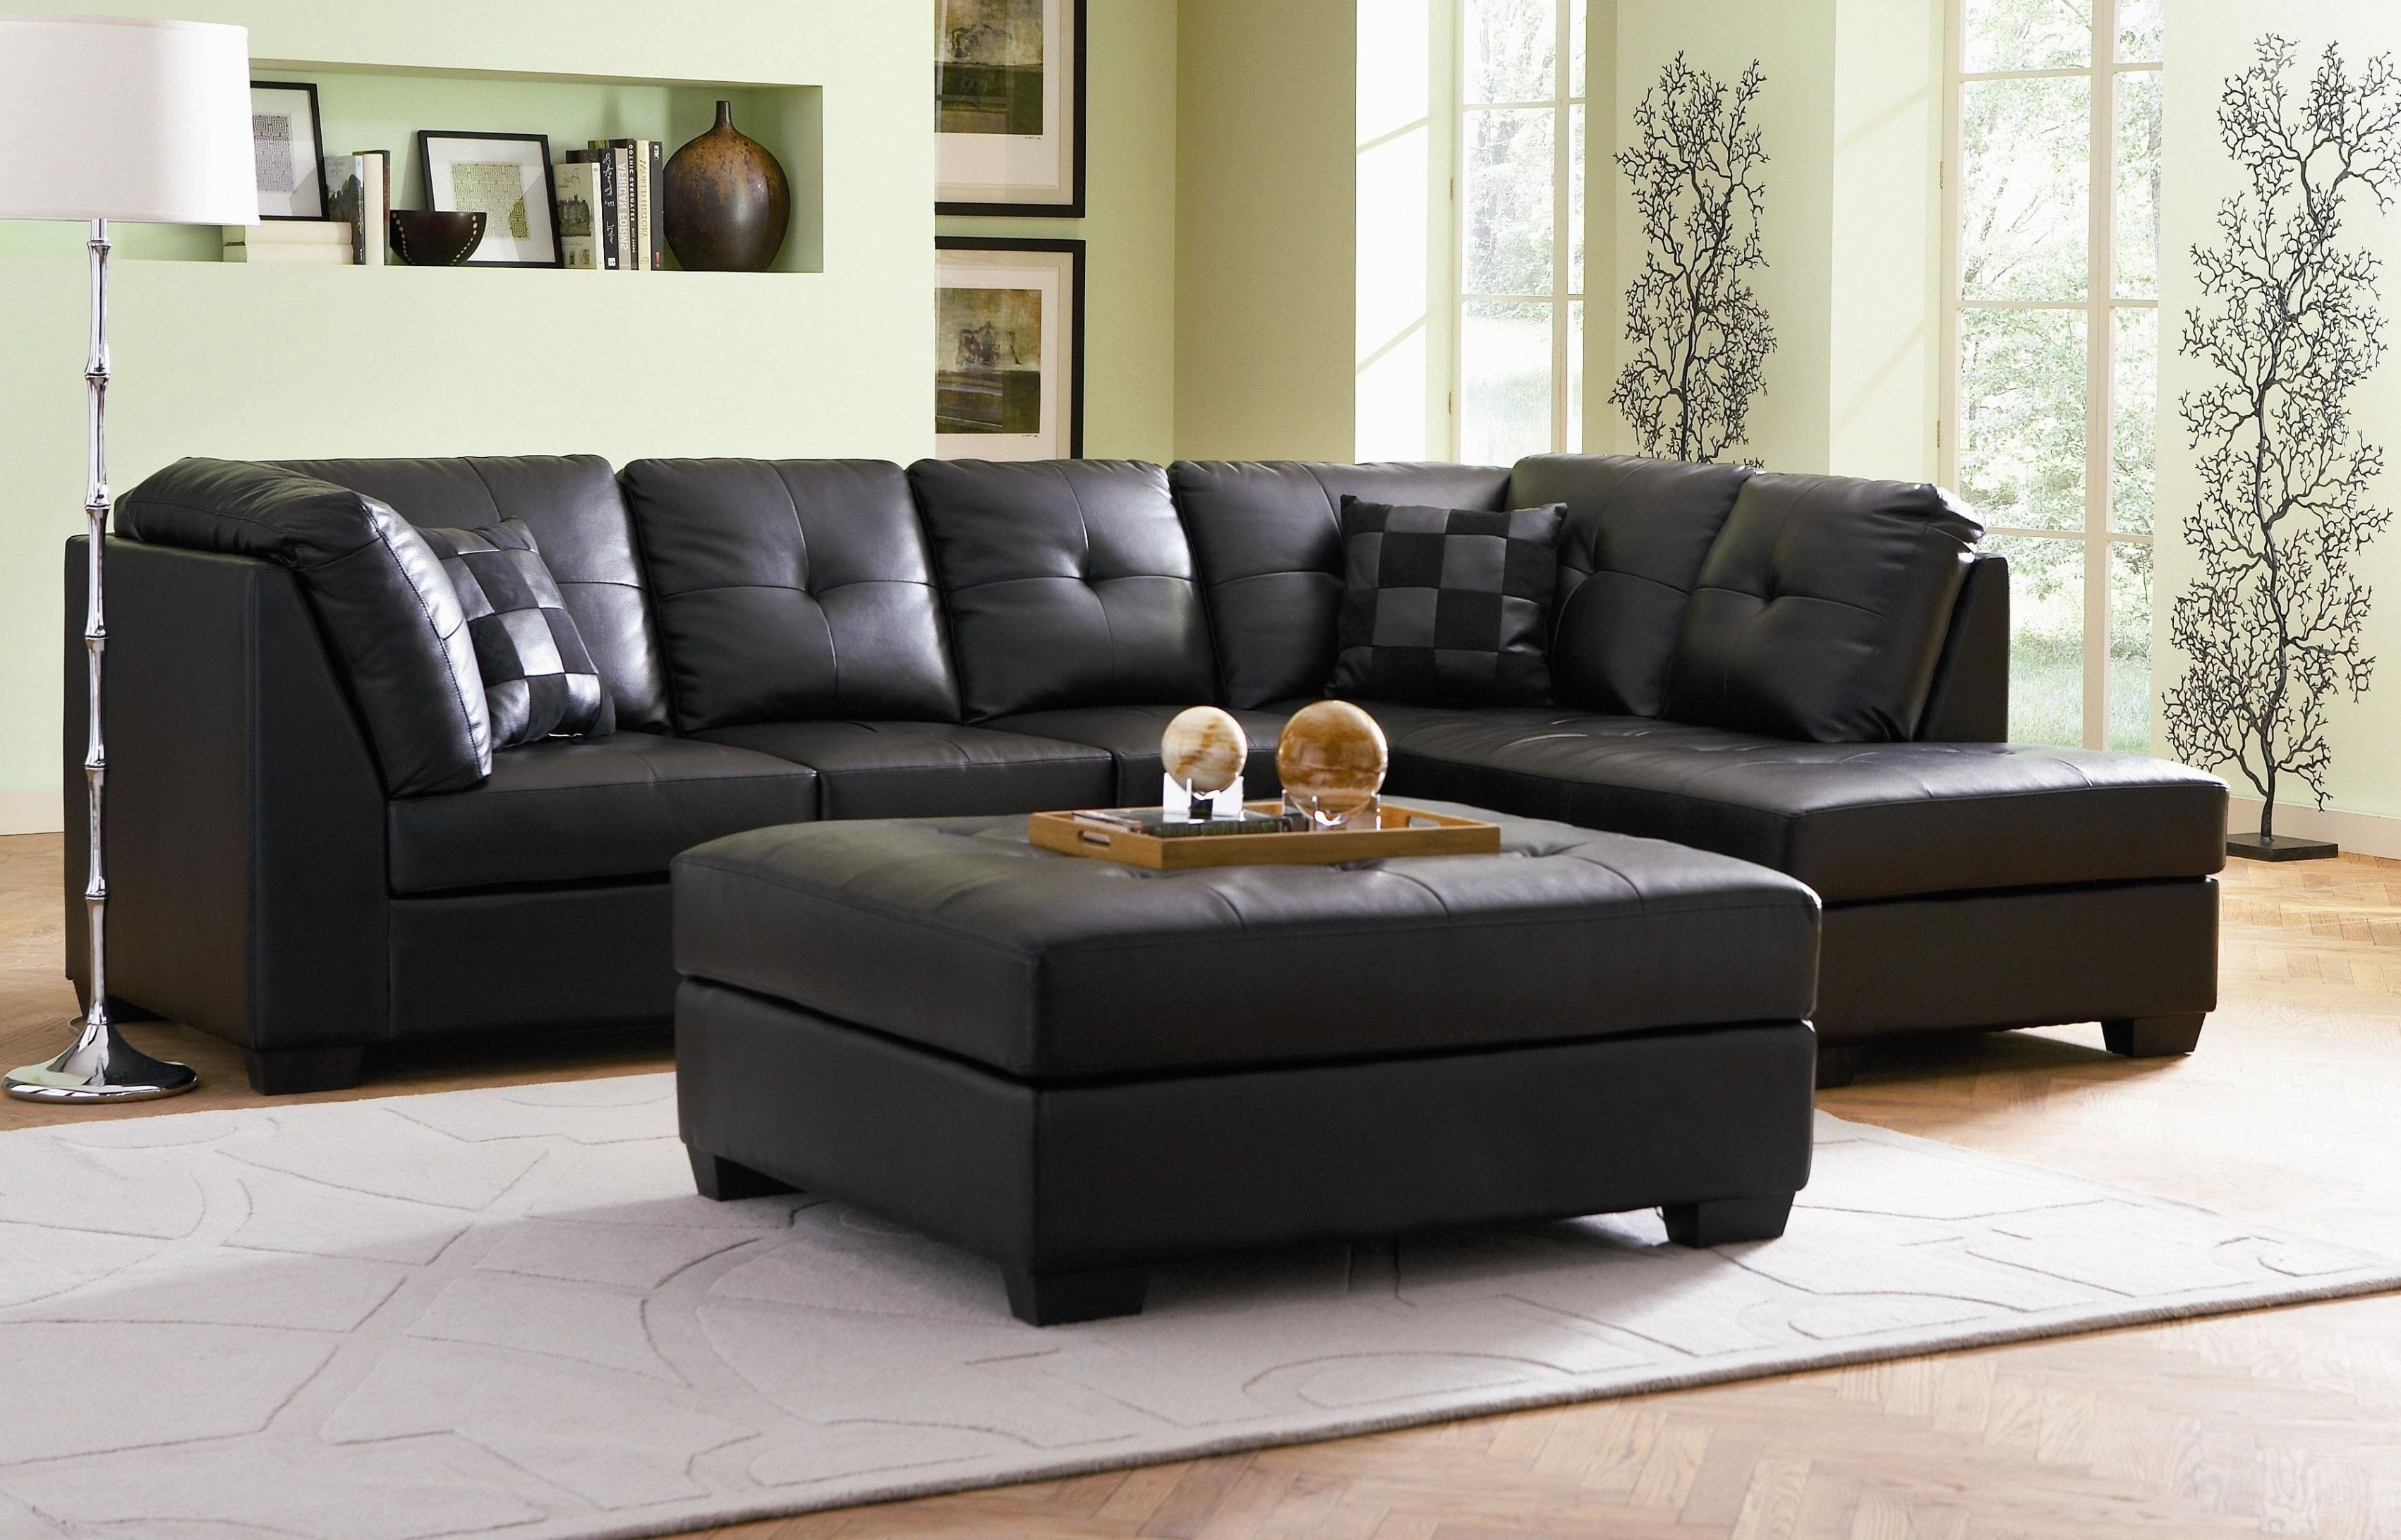 sectional sofa under 2000 deals online india sofas 200 tany net